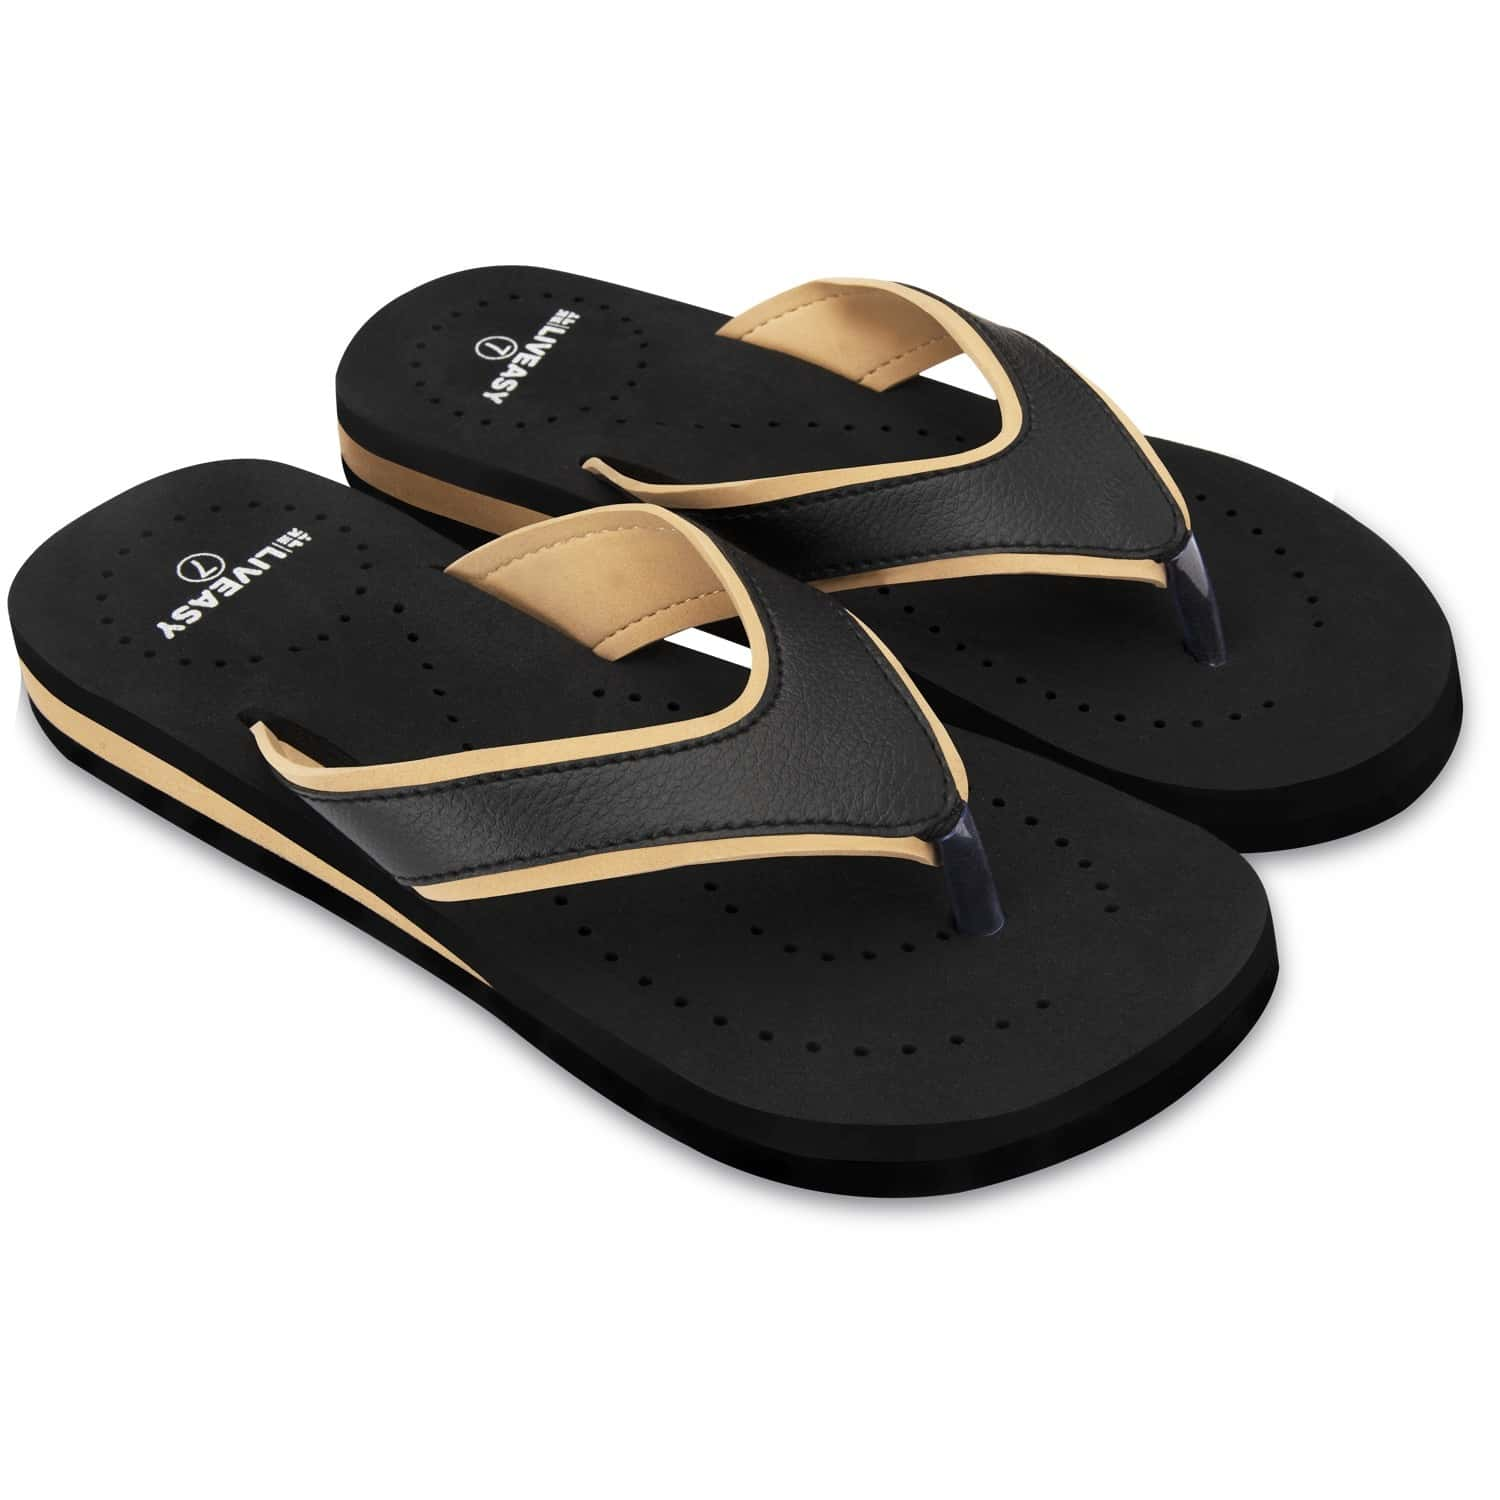 Liveasy Essentials Women's Diabetic & Orthopedic Slippers - Black With Yellow - Size Uk 6 / Us 9